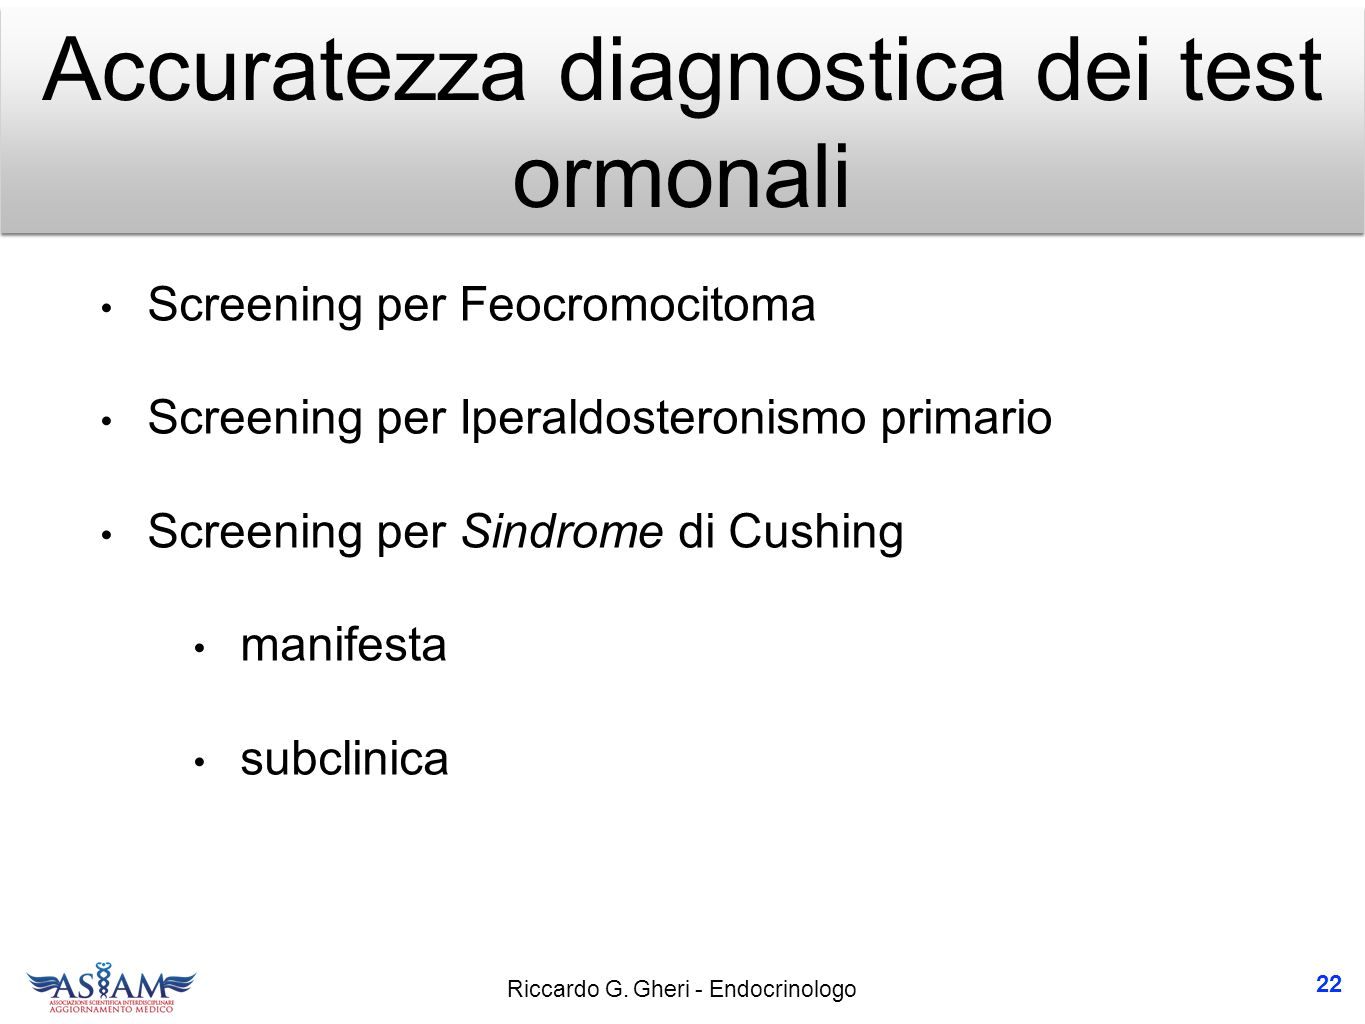 Accuratezza diagnostica dei test ormonali